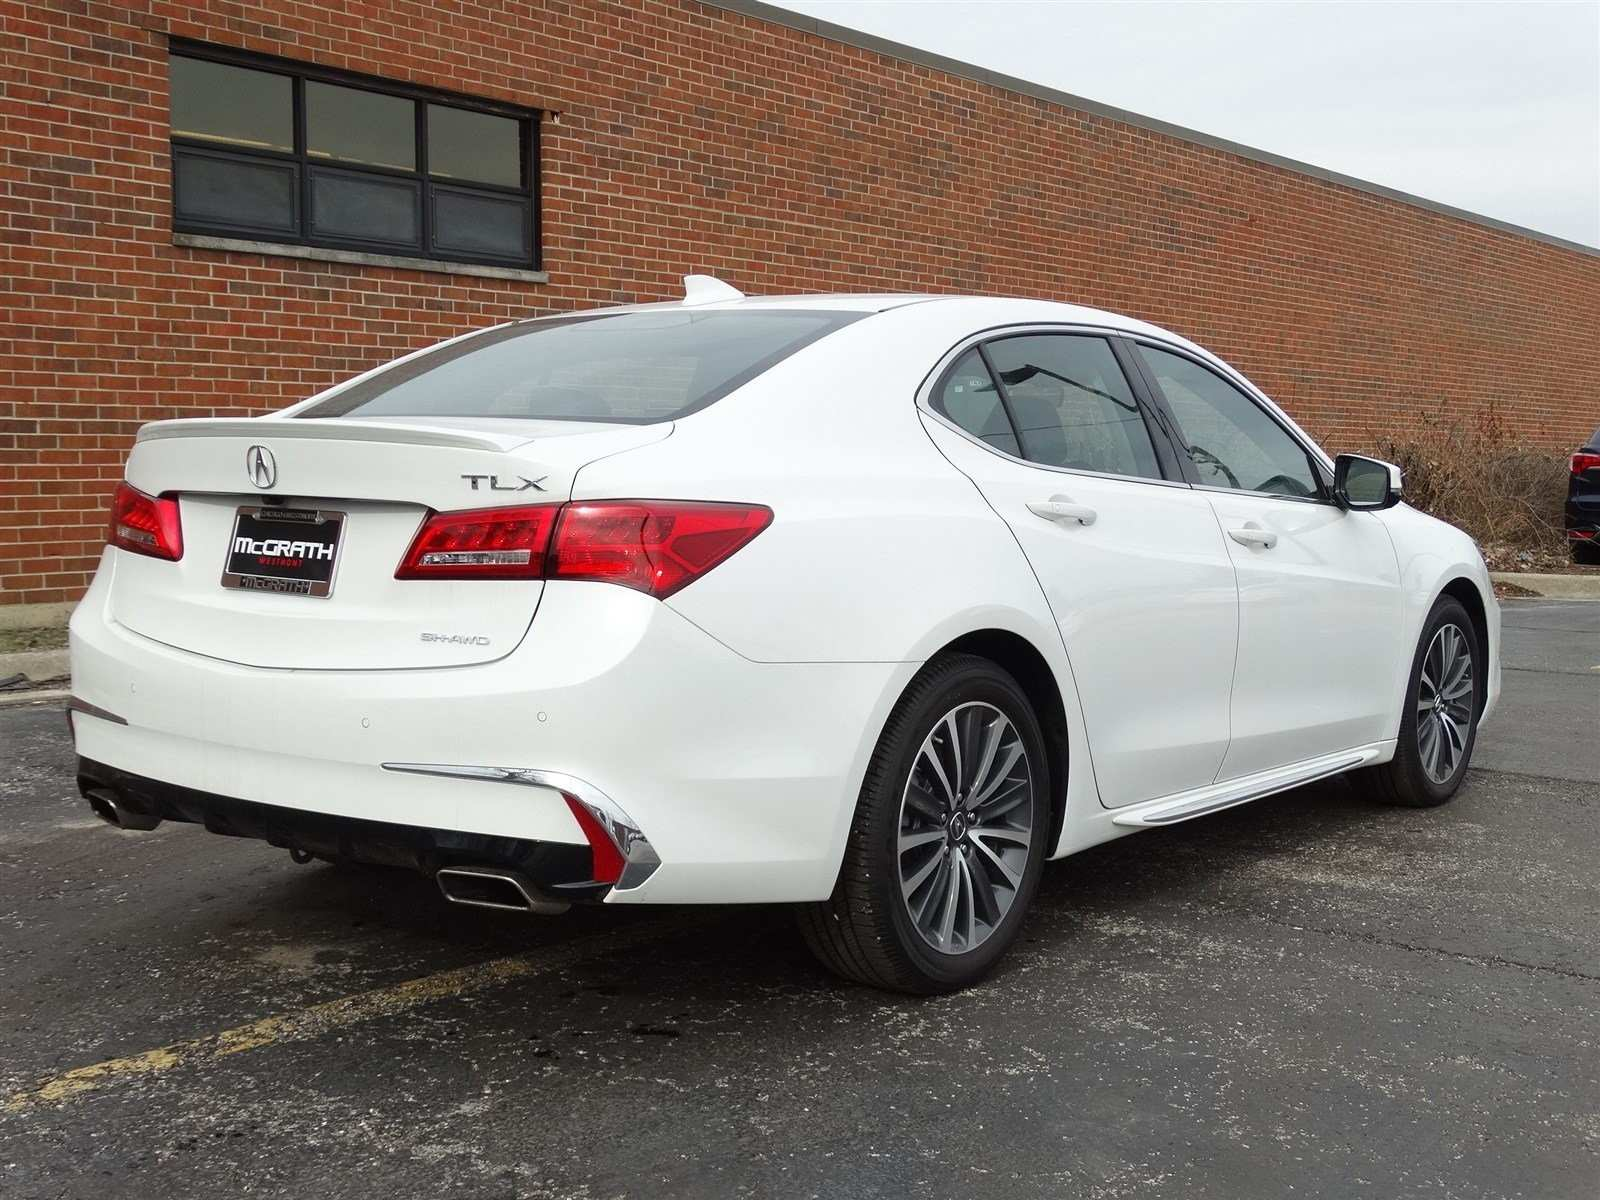 43 All New 2019 Acura Tl Price